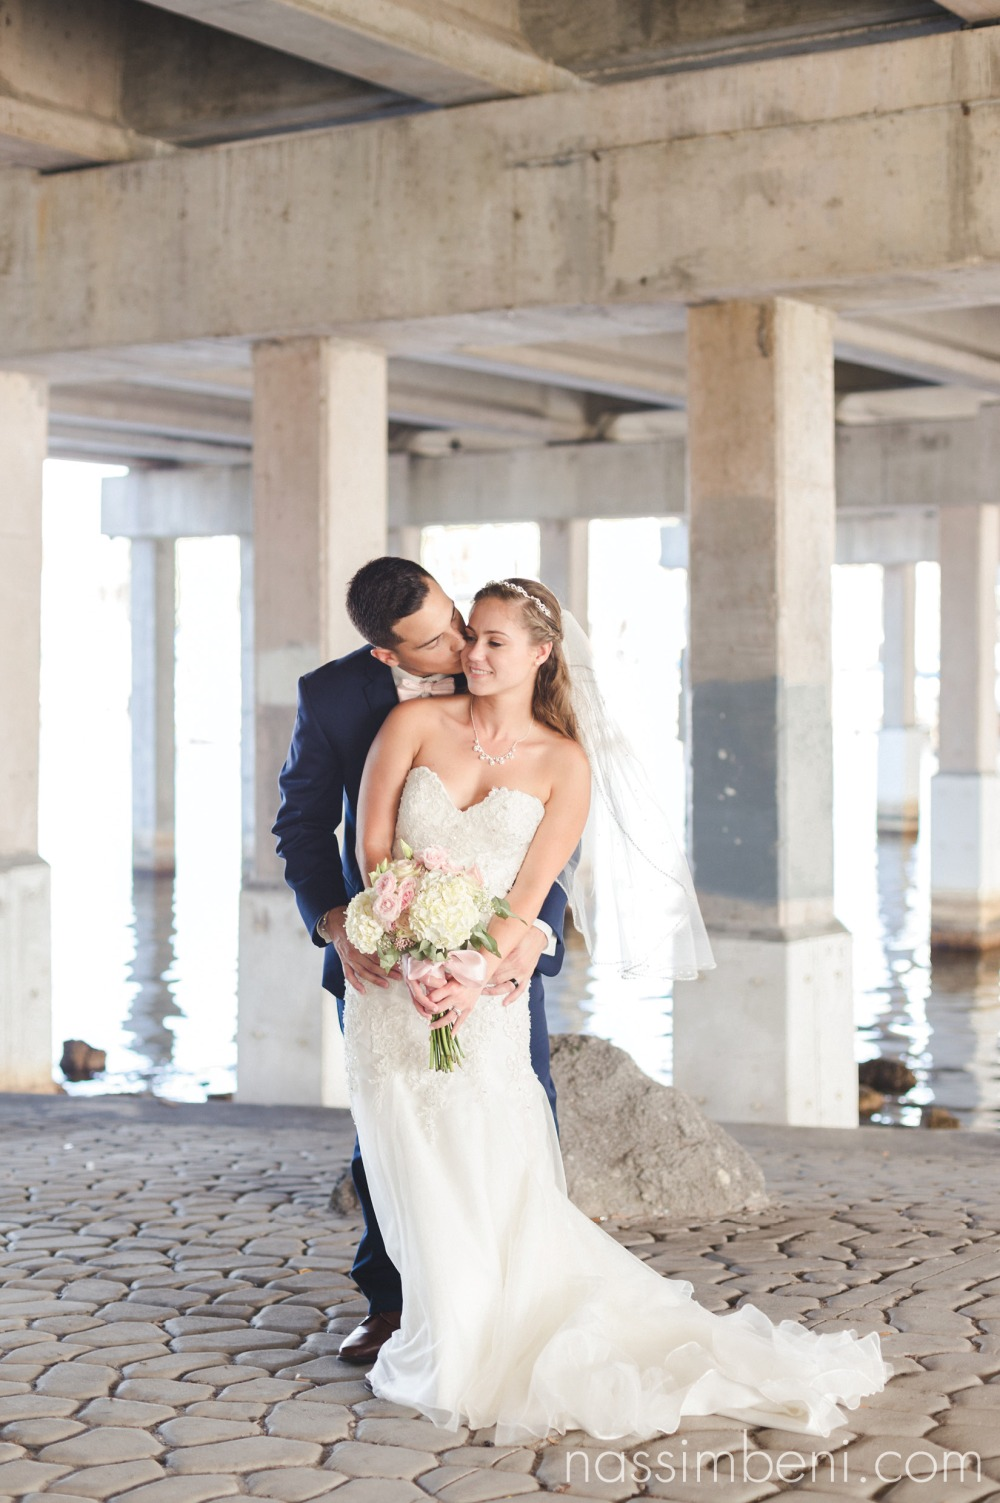 frame worthy bride and groom photo at crane creek promenade park by nassimbeni photography